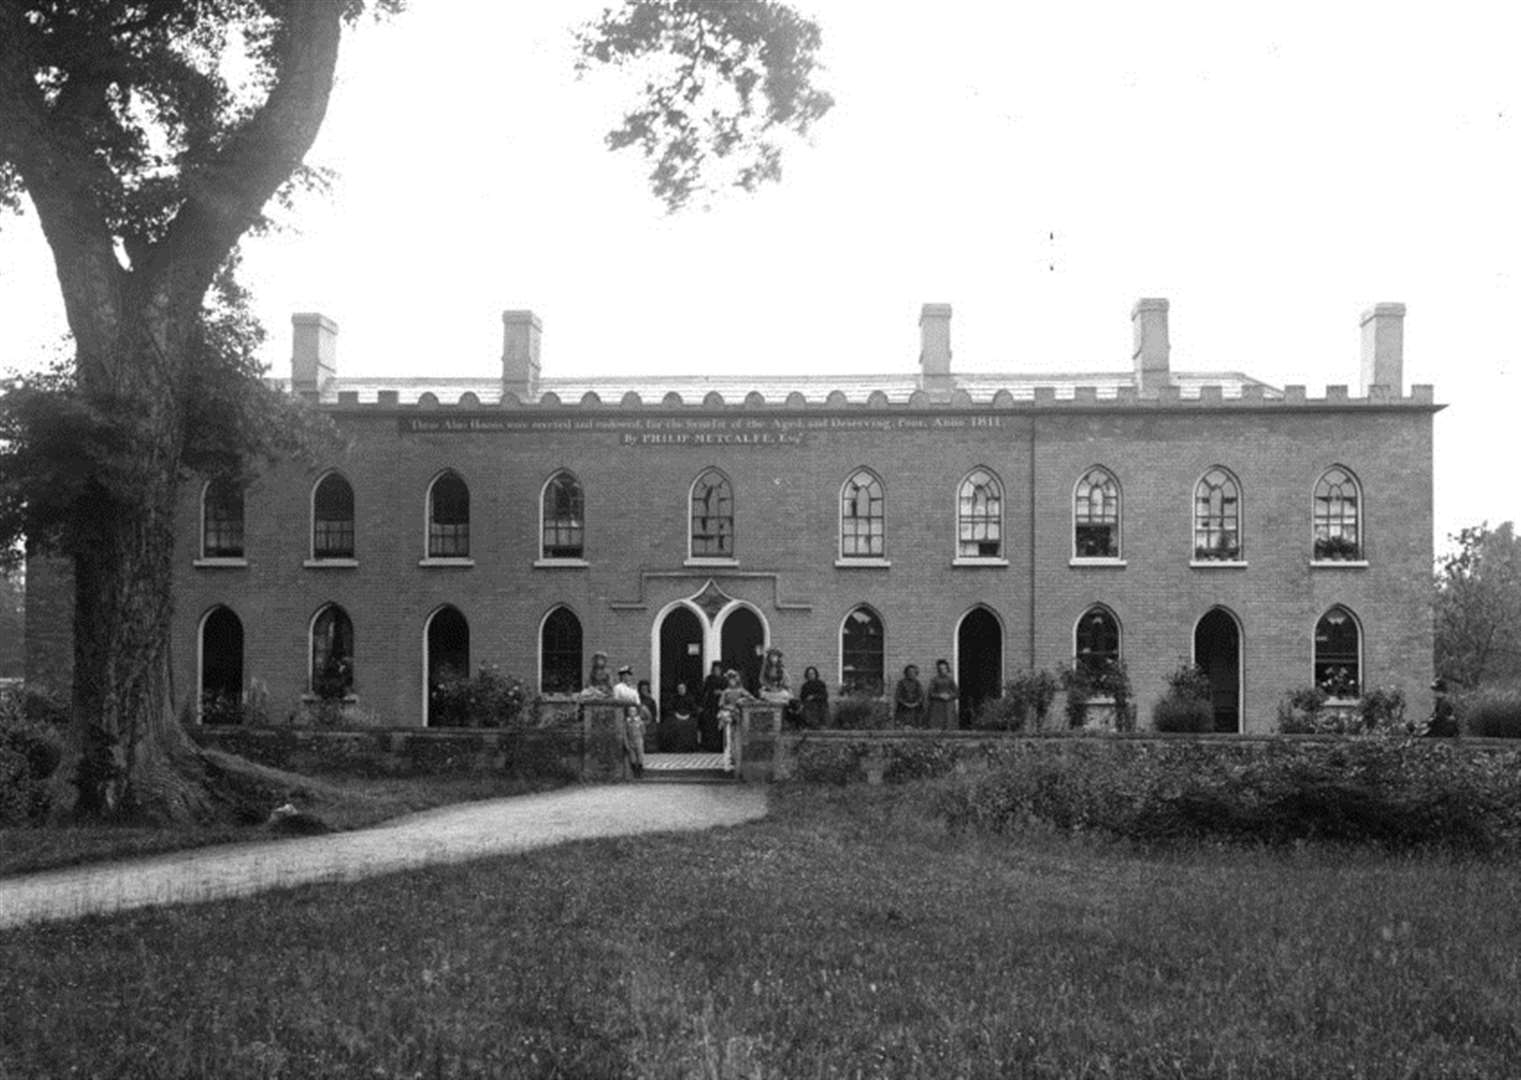 NOSTALGIA: Almshouses at Hawstead – from the Spanton Jarman collection